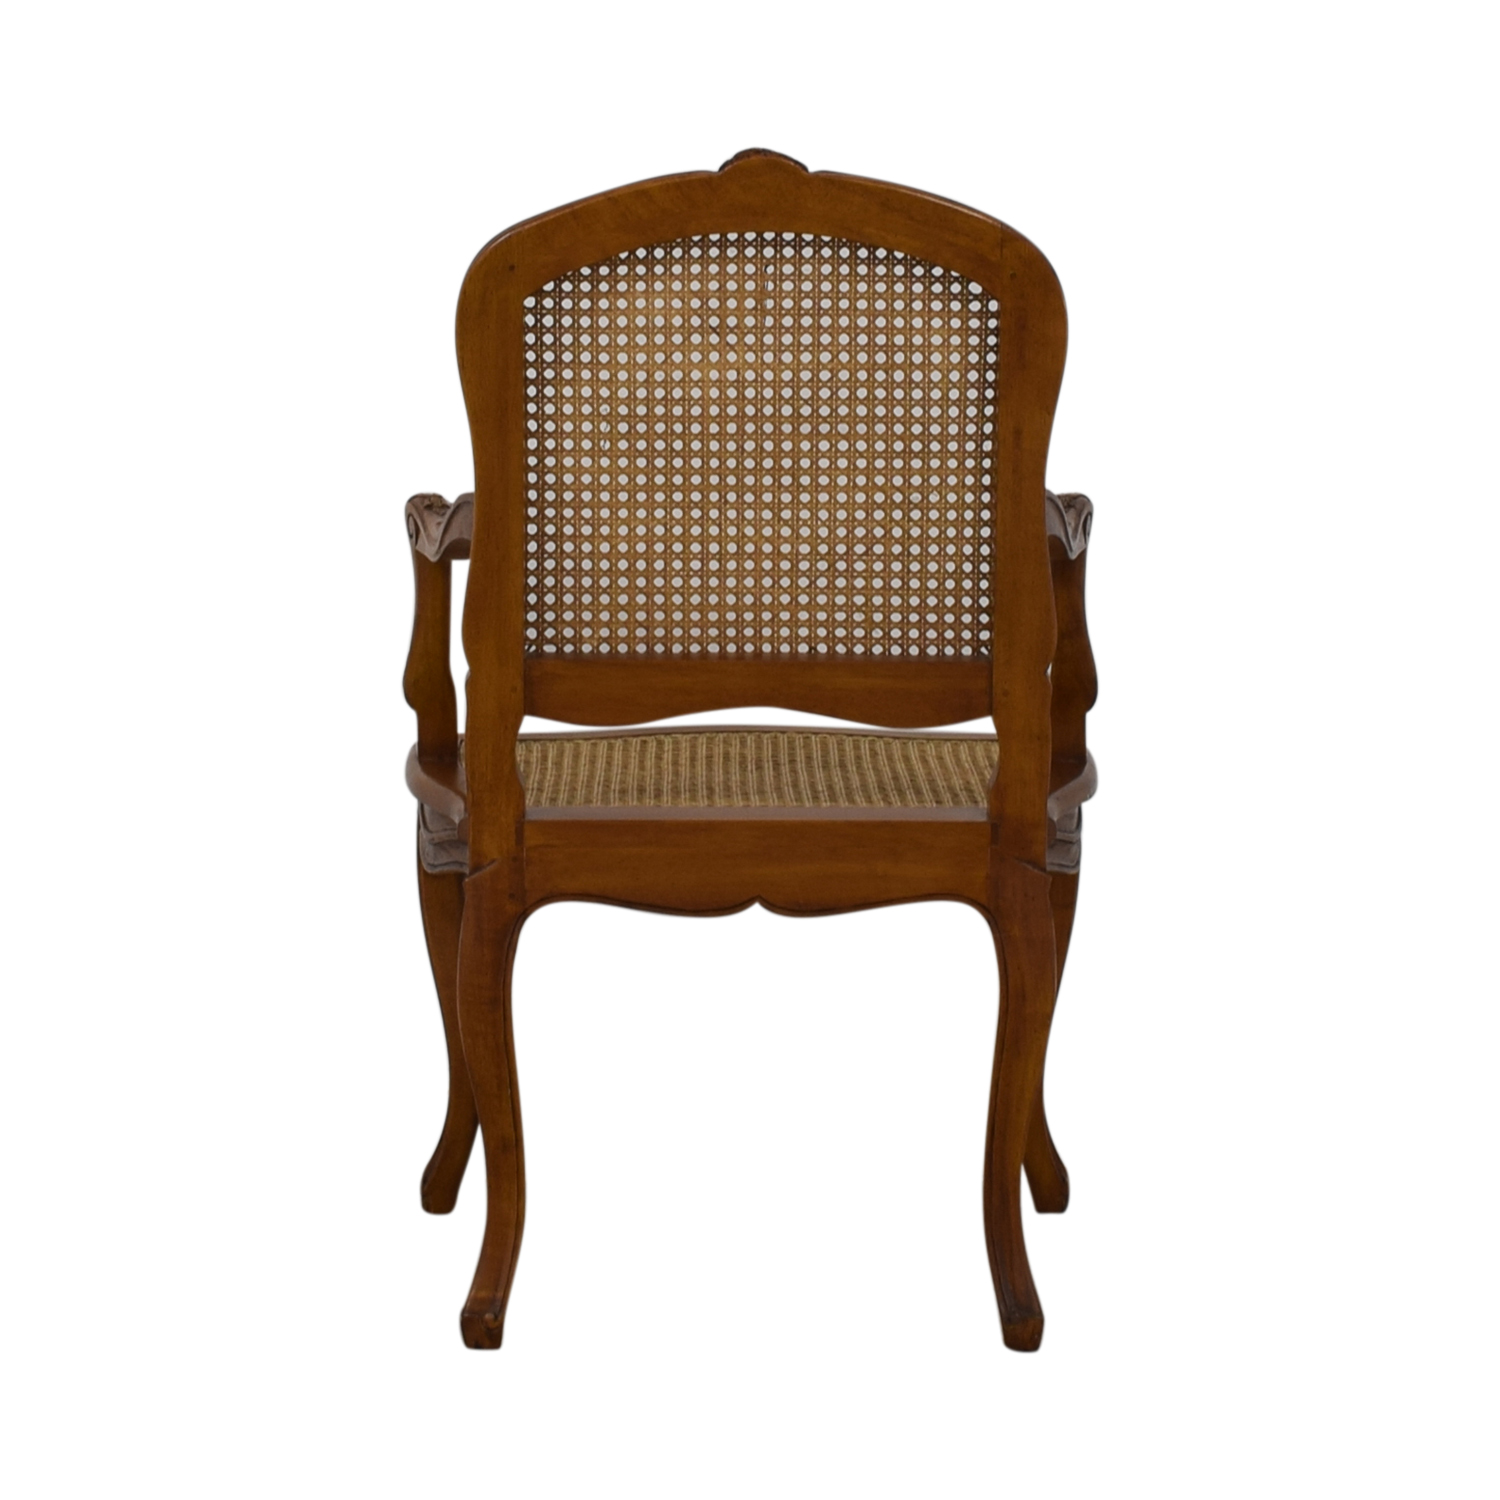 French Wood Cane Accent Chair for sale